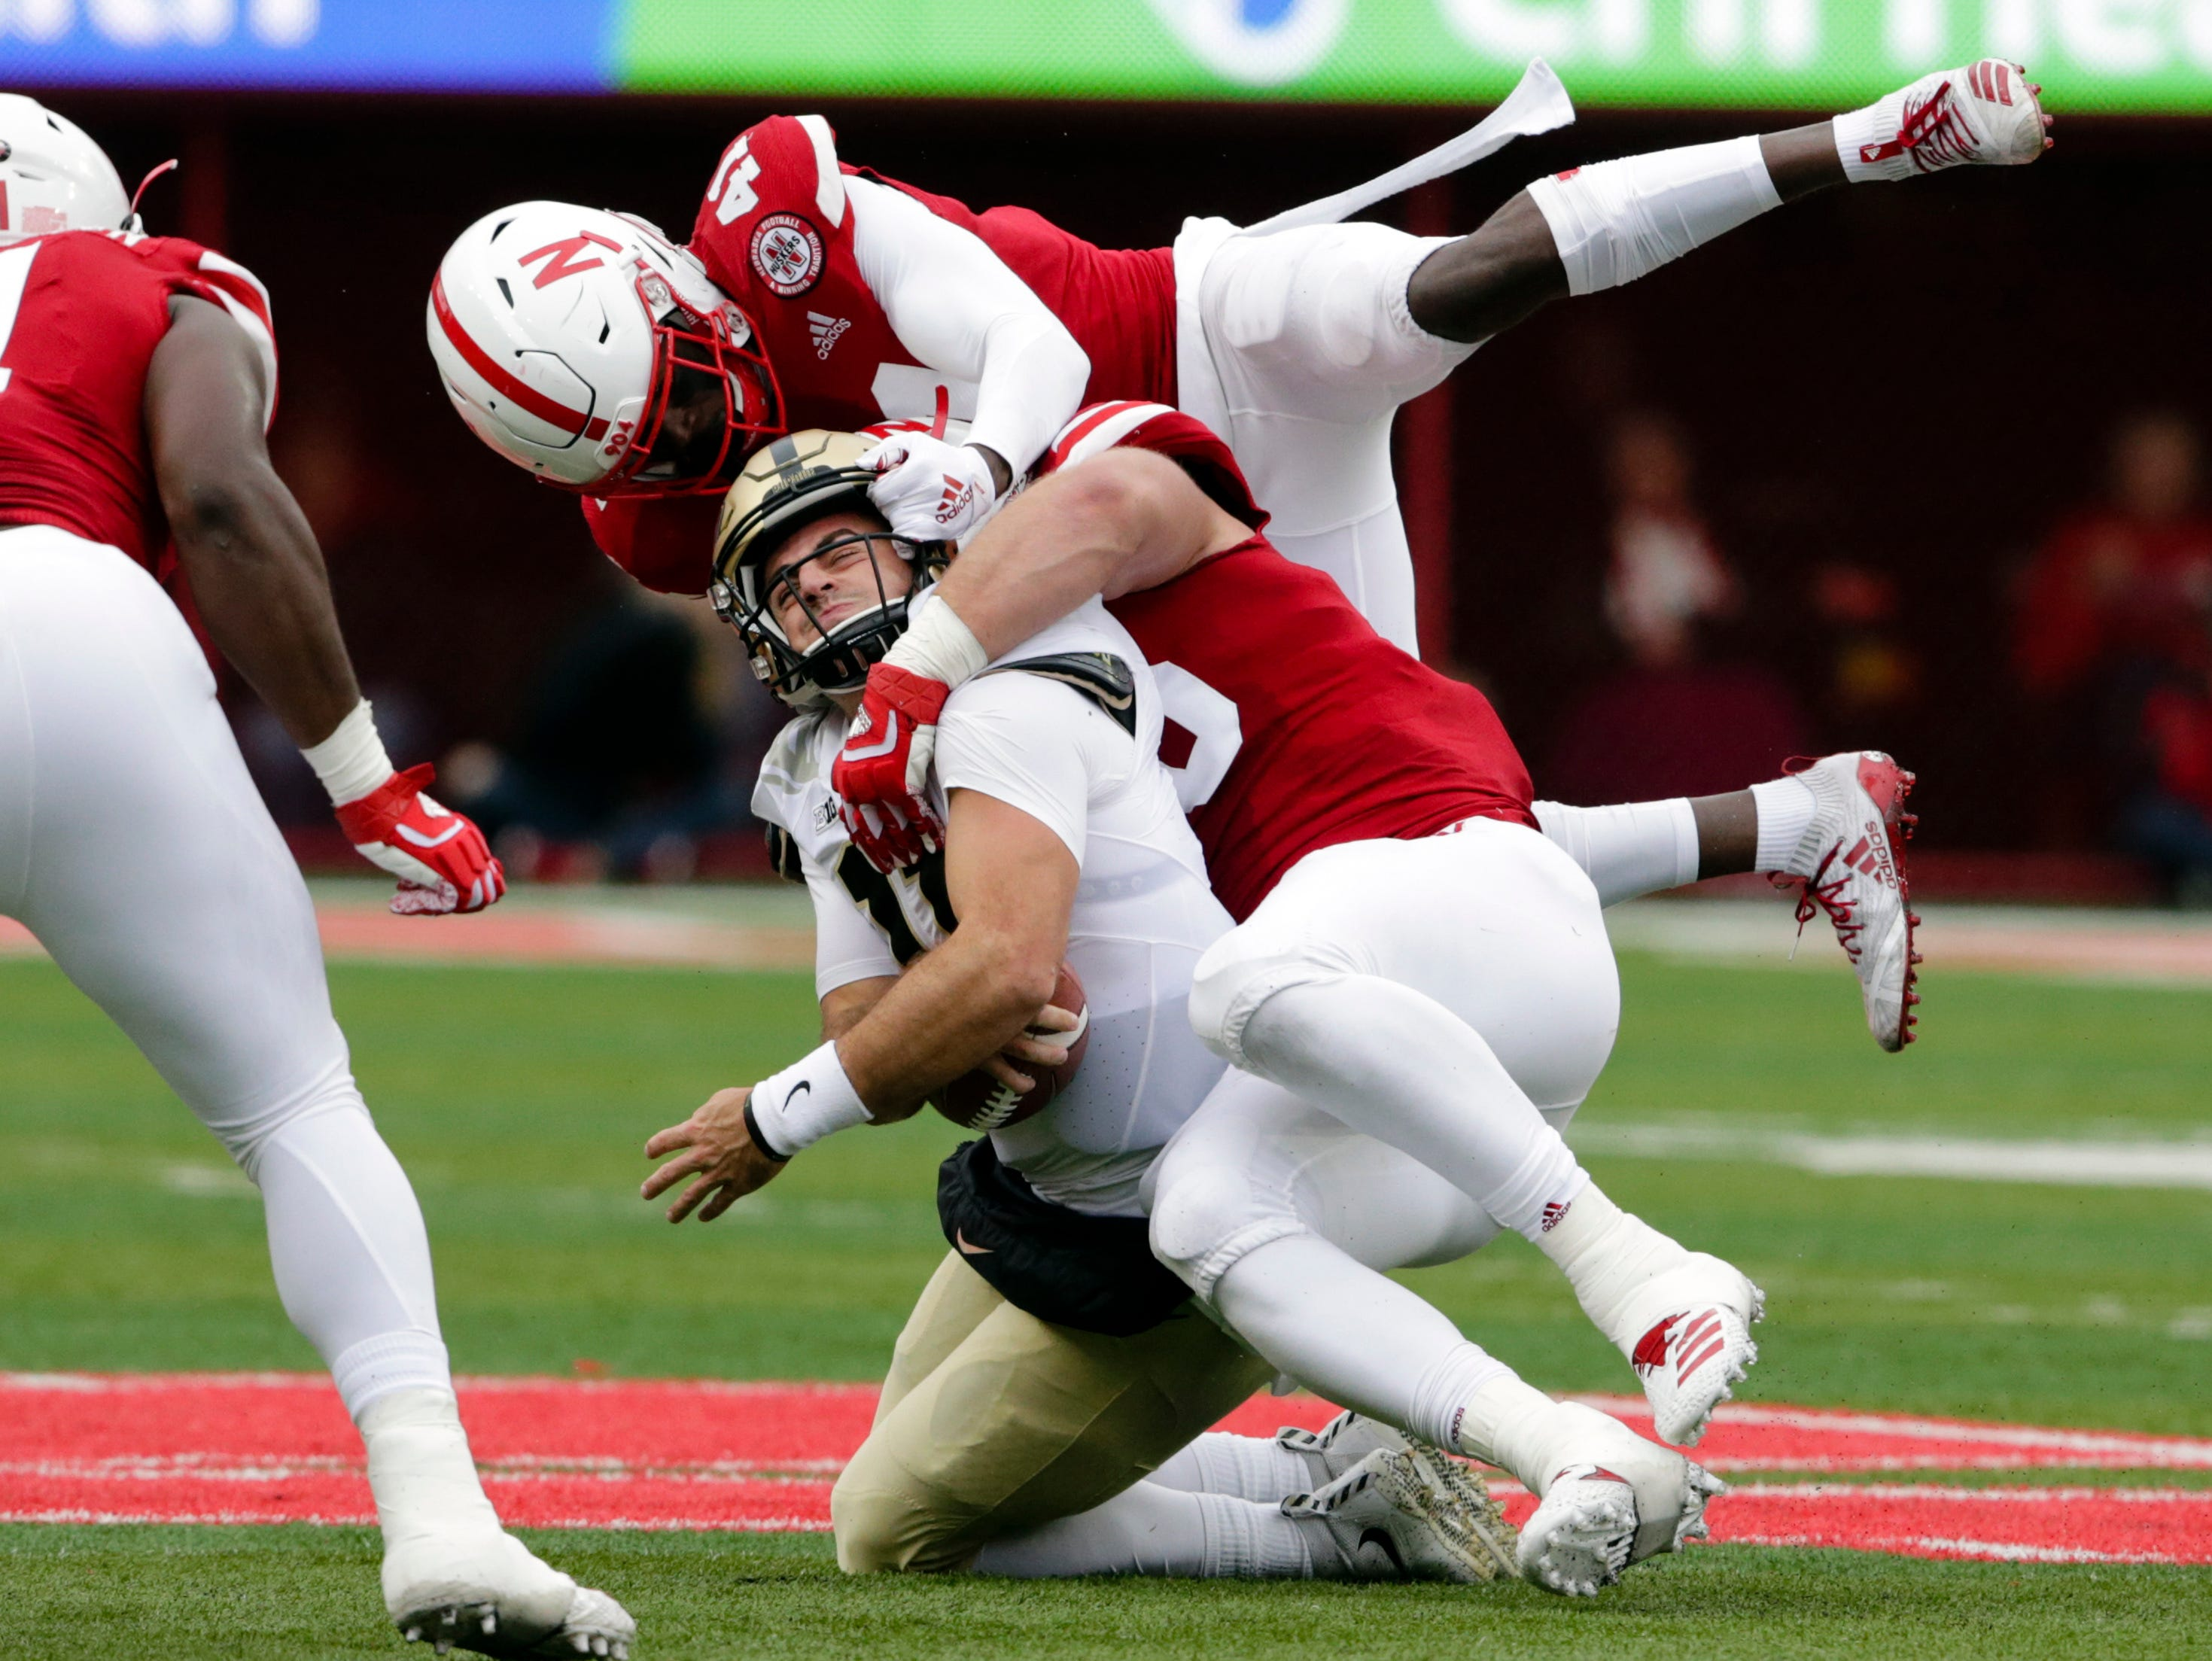 Purdue quarterback David Blough (11) is sacked by Nebraska defensive back Deontai Williams (41) and defensive lineman Ben Stille (95) during the first half of an NCAA college football game in Lincoln, Neb., Saturday, Sept. 29, 2018. (AP Photo/Nati Harnik)